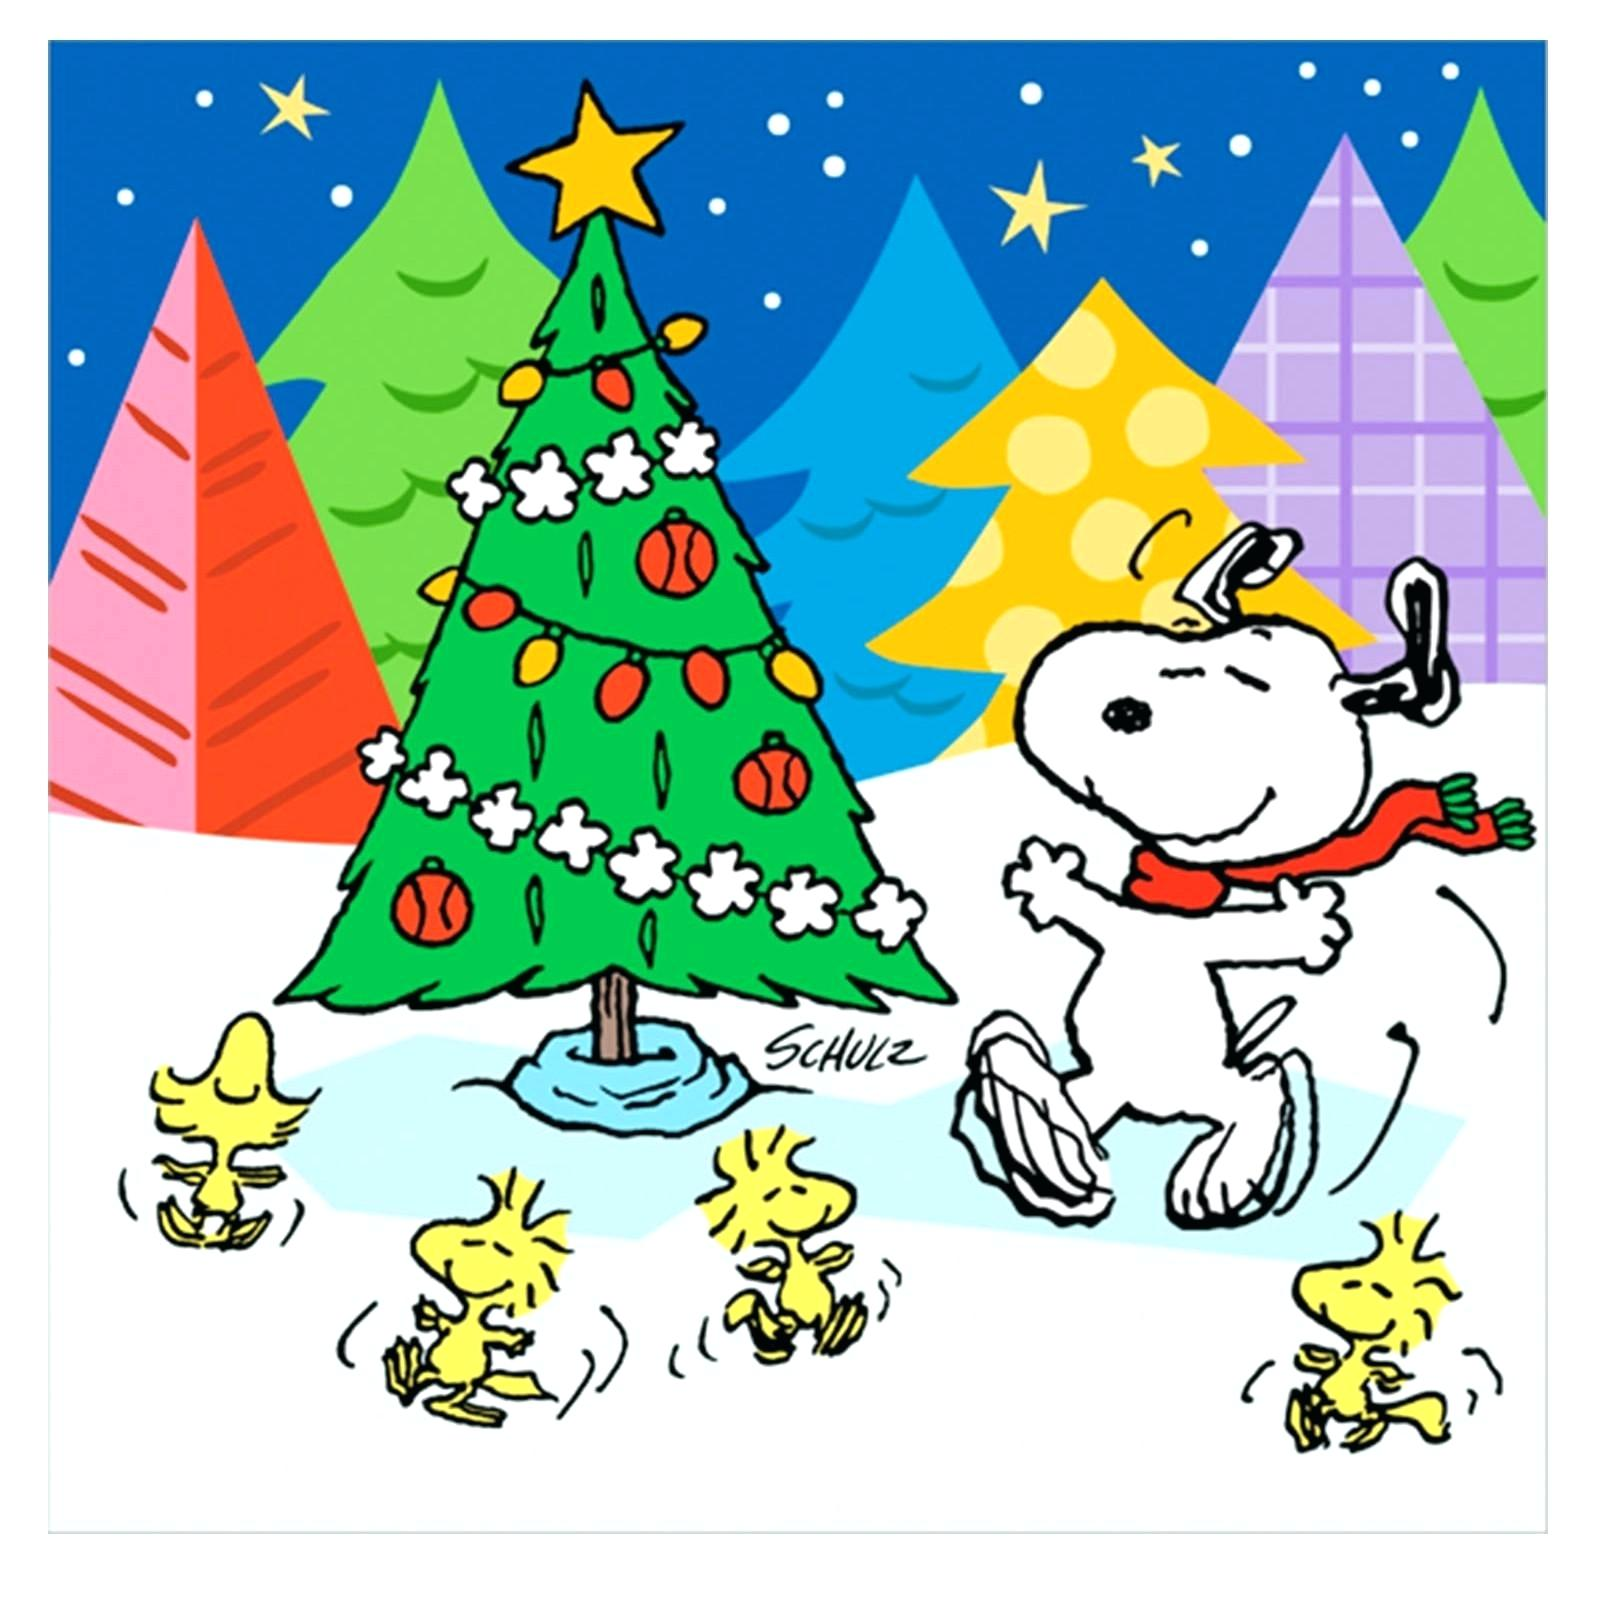 1600x1600 Snoopy Christmas Decorations Uk